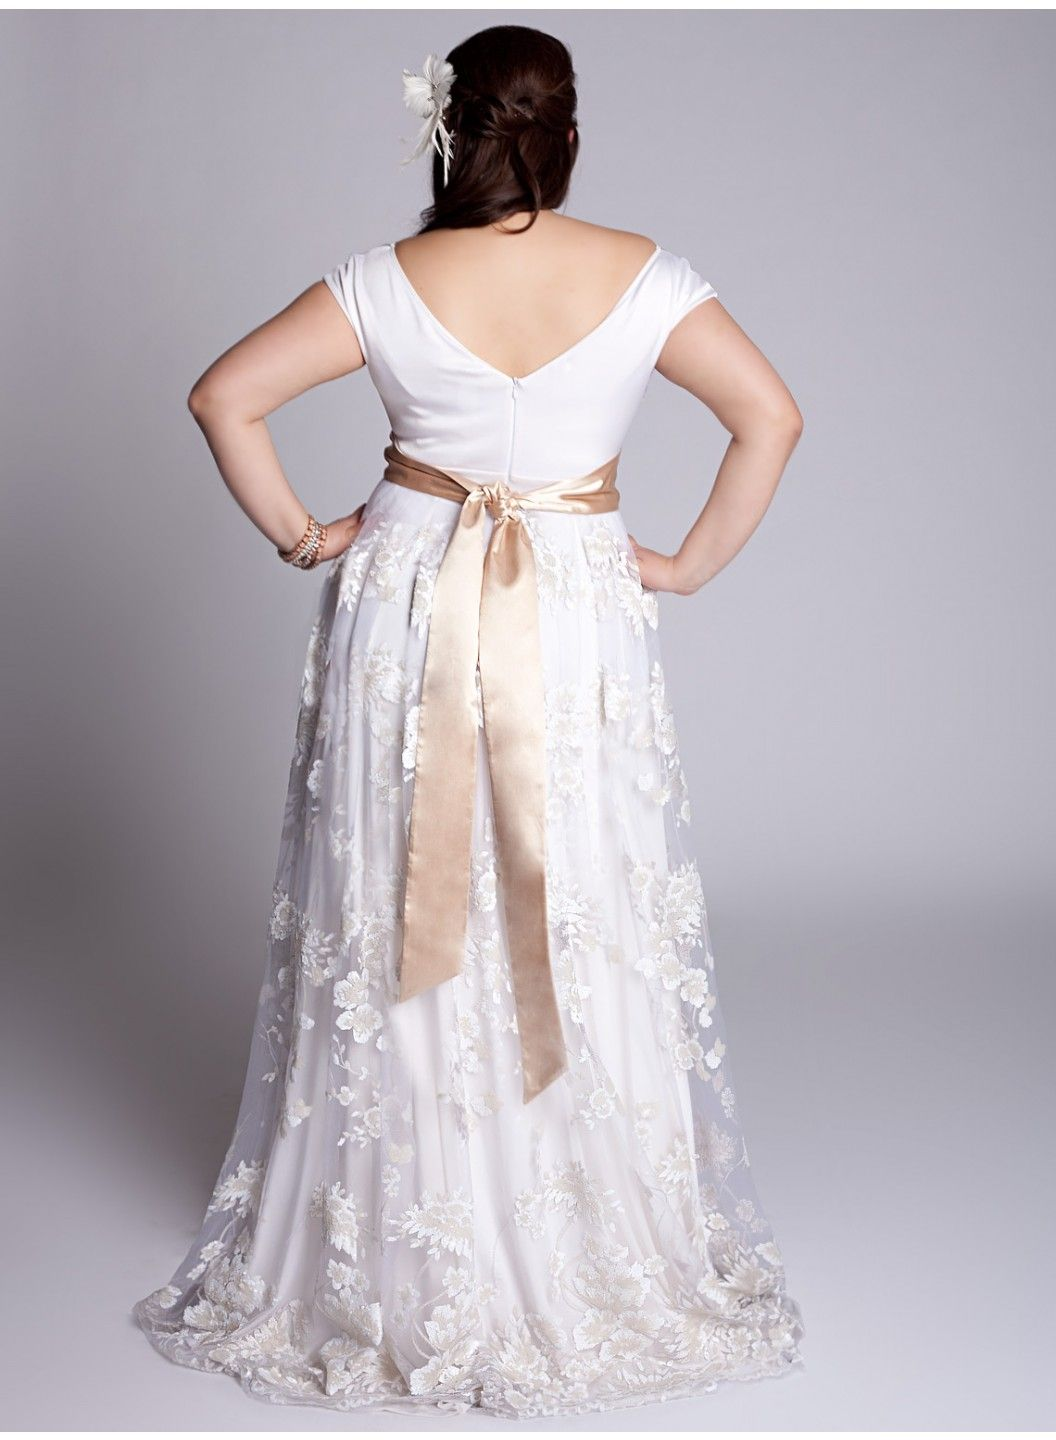 Mazie plus size dress plus size wedding gowns wedding and gowns